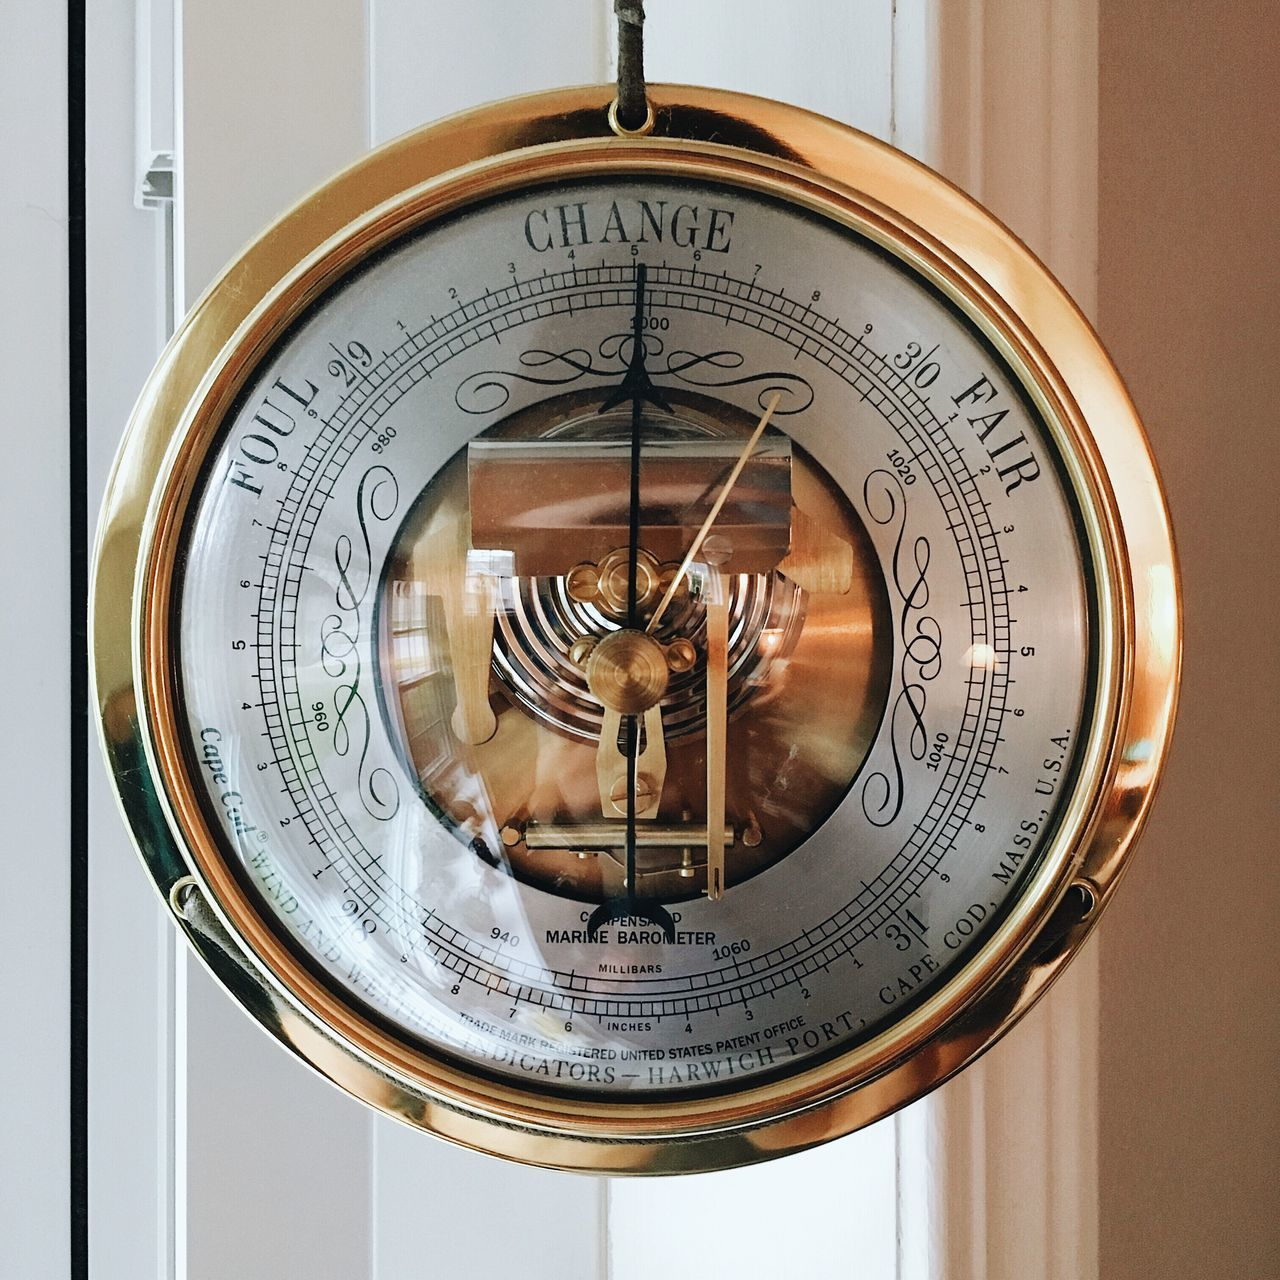 number, instrument of measurement, indoors, close-up, accuracy, no people, direction, technology, time, day, navigational compass, minute hand